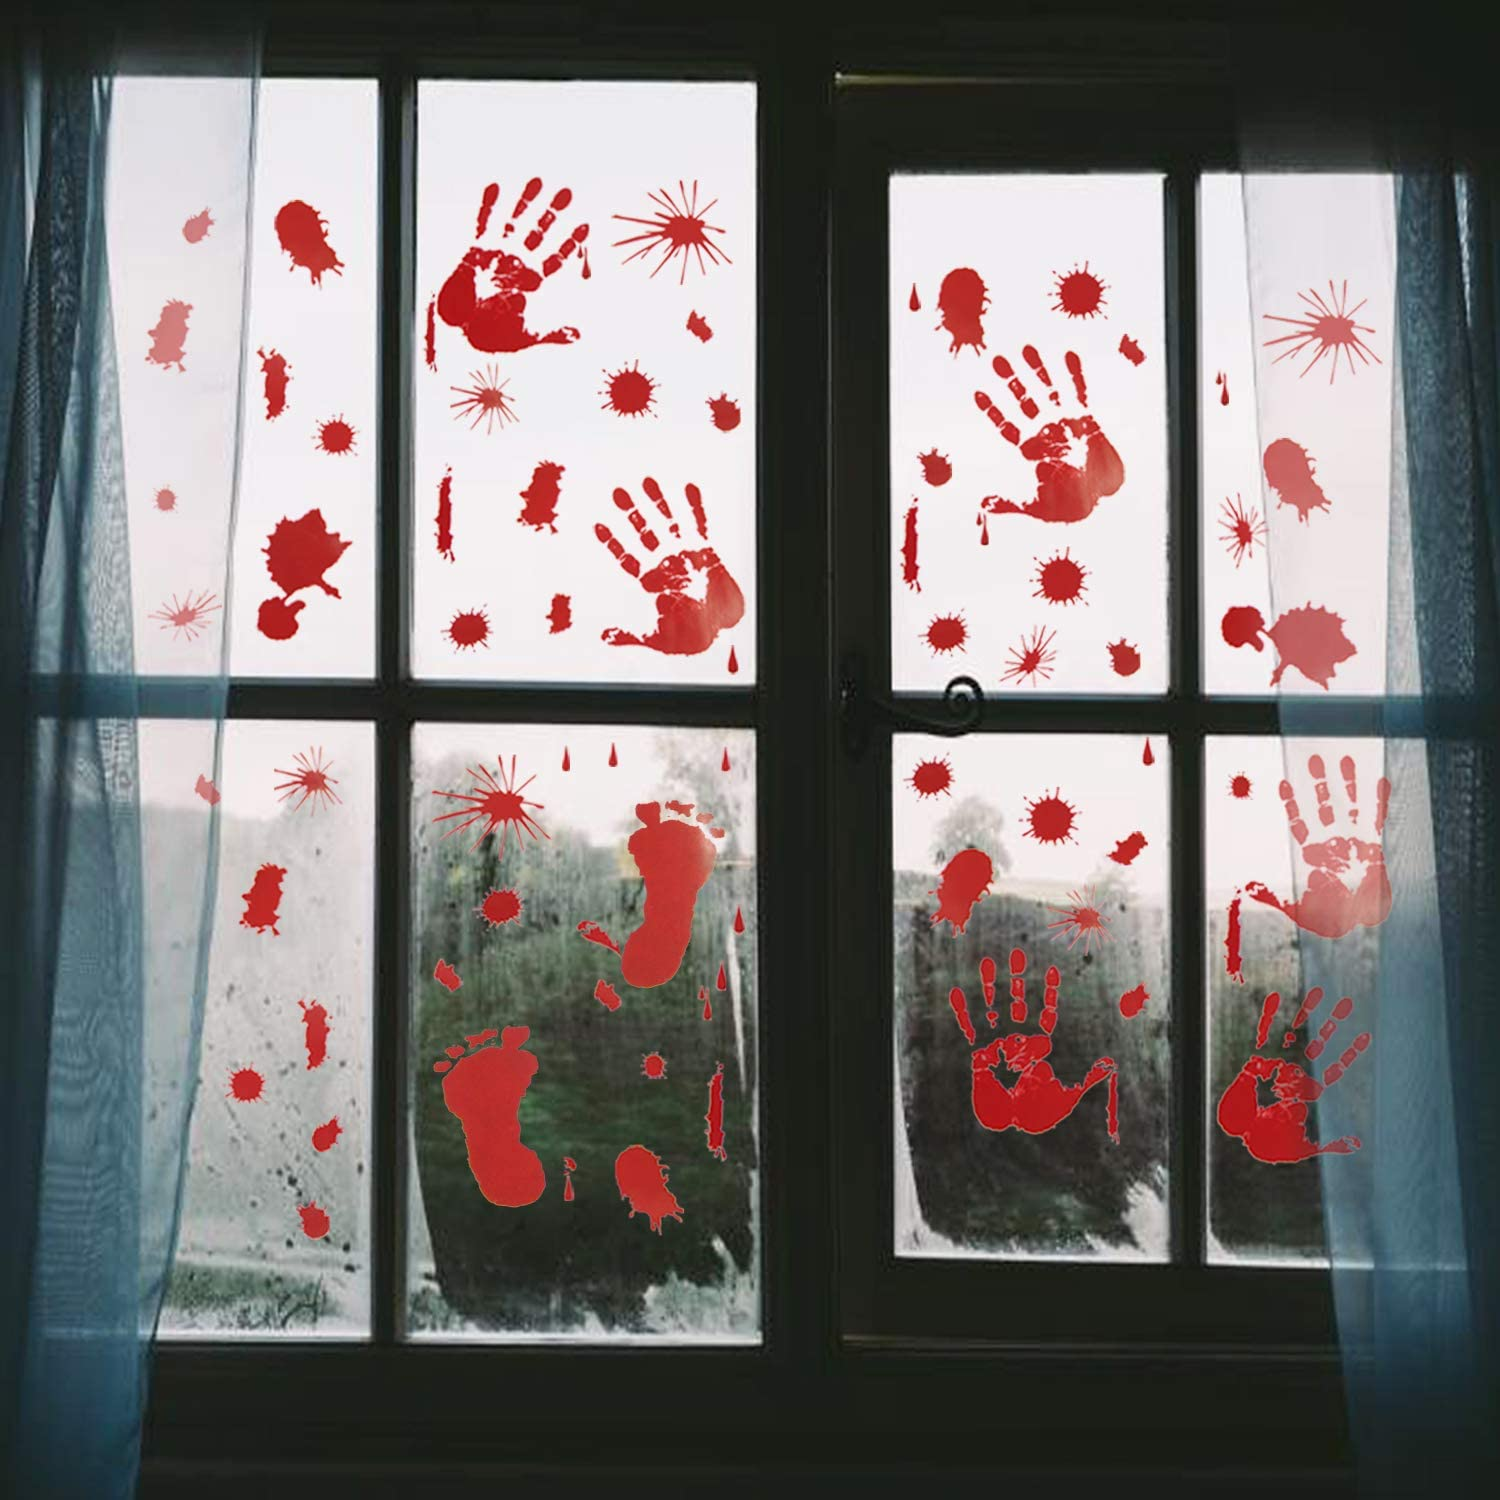 Pawliss Halloween Window Clings Decals Decor, Bloody Handprint Footprint Horror Bathroom Zombie Party Decorations Supplies, 12-Inch by 17-Inch Sheet, 105 Pcs